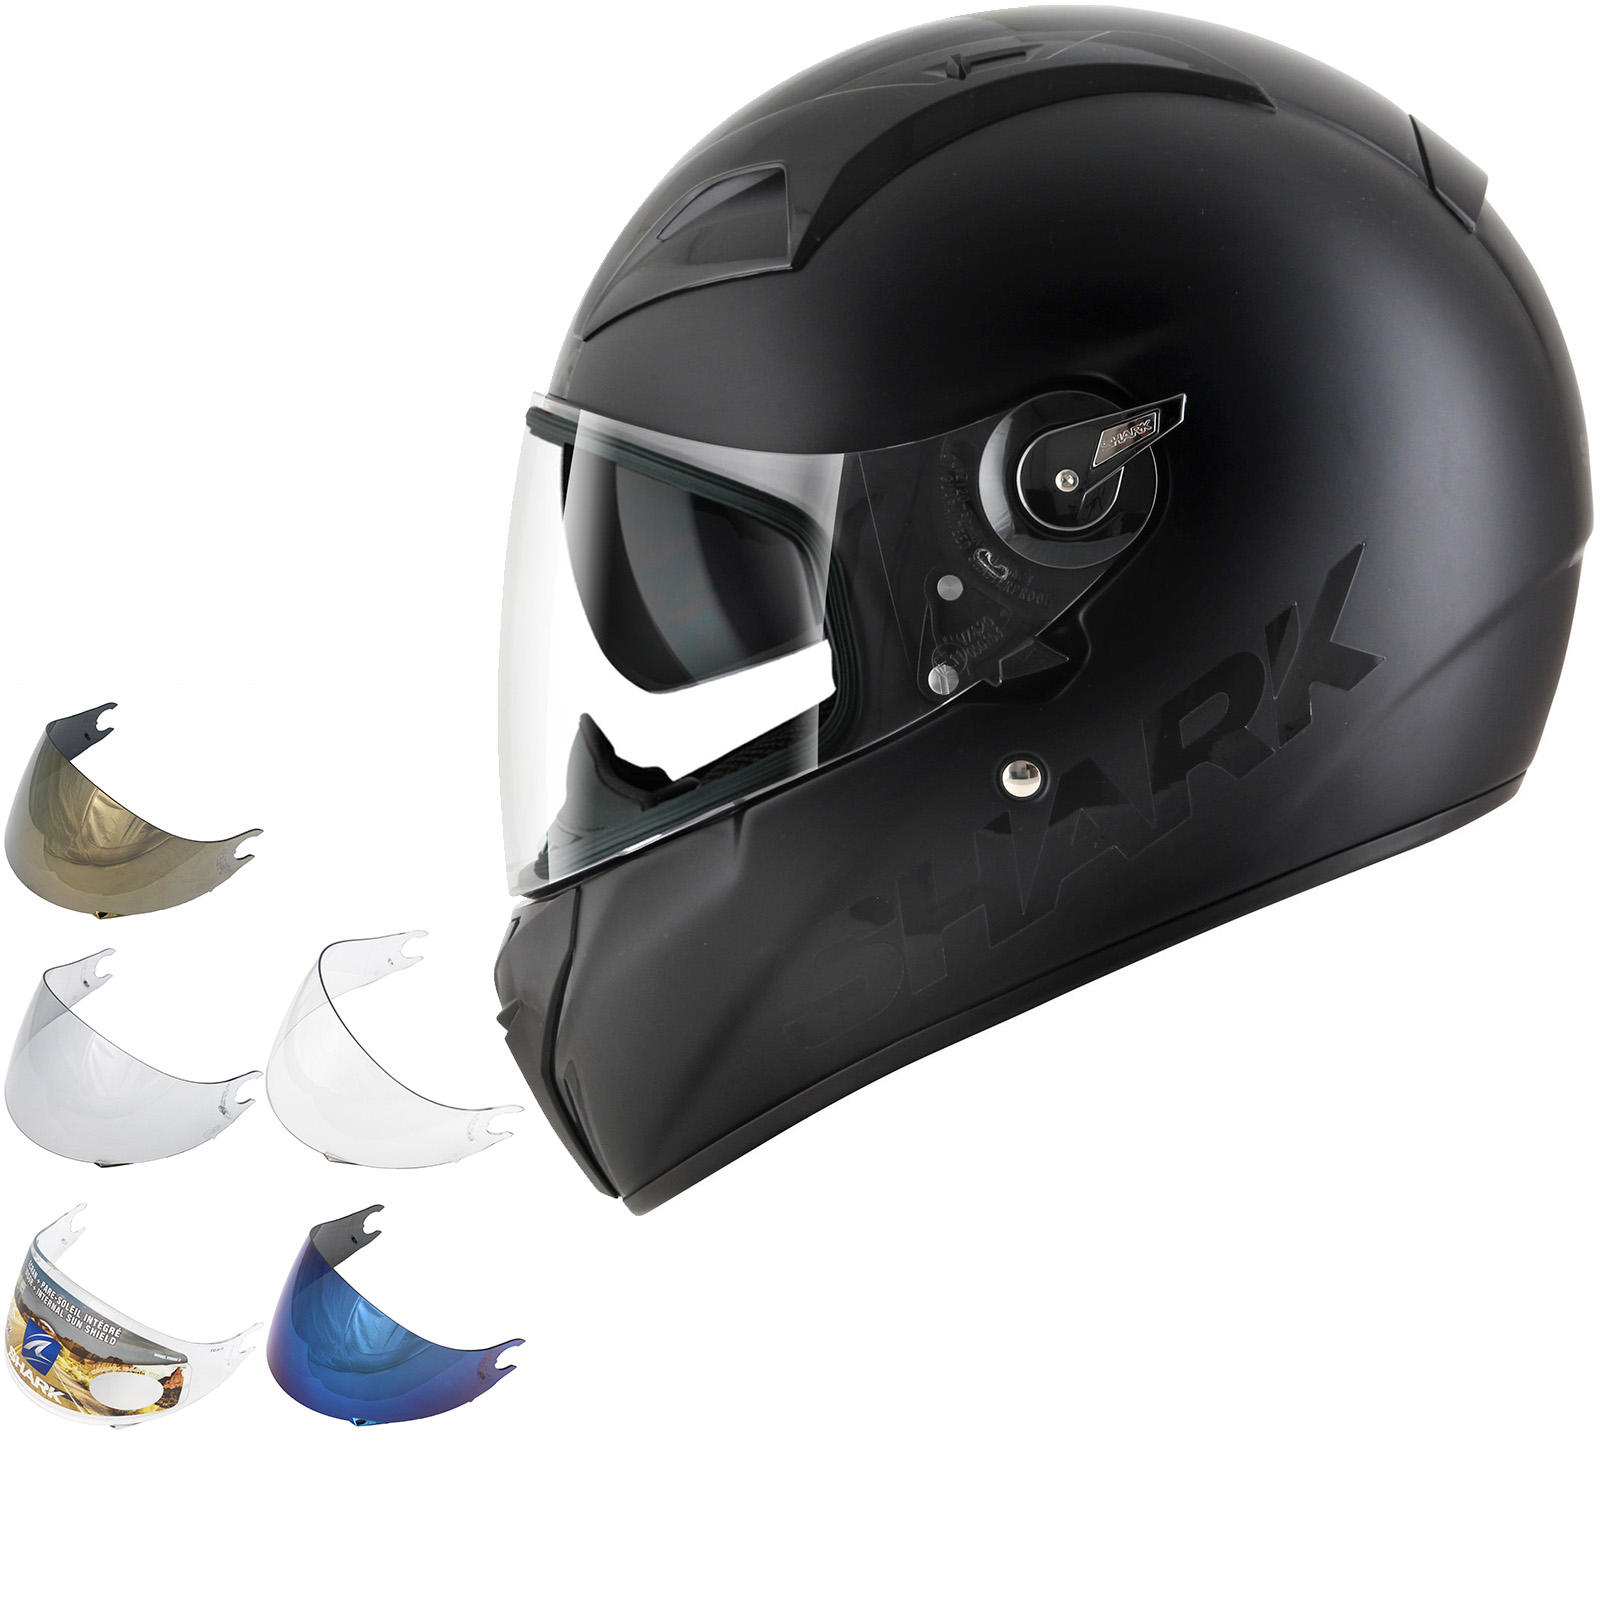 shark vision r series 2 dual black d tone motorcycle helmet visor full face helmets. Black Bedroom Furniture Sets. Home Design Ideas